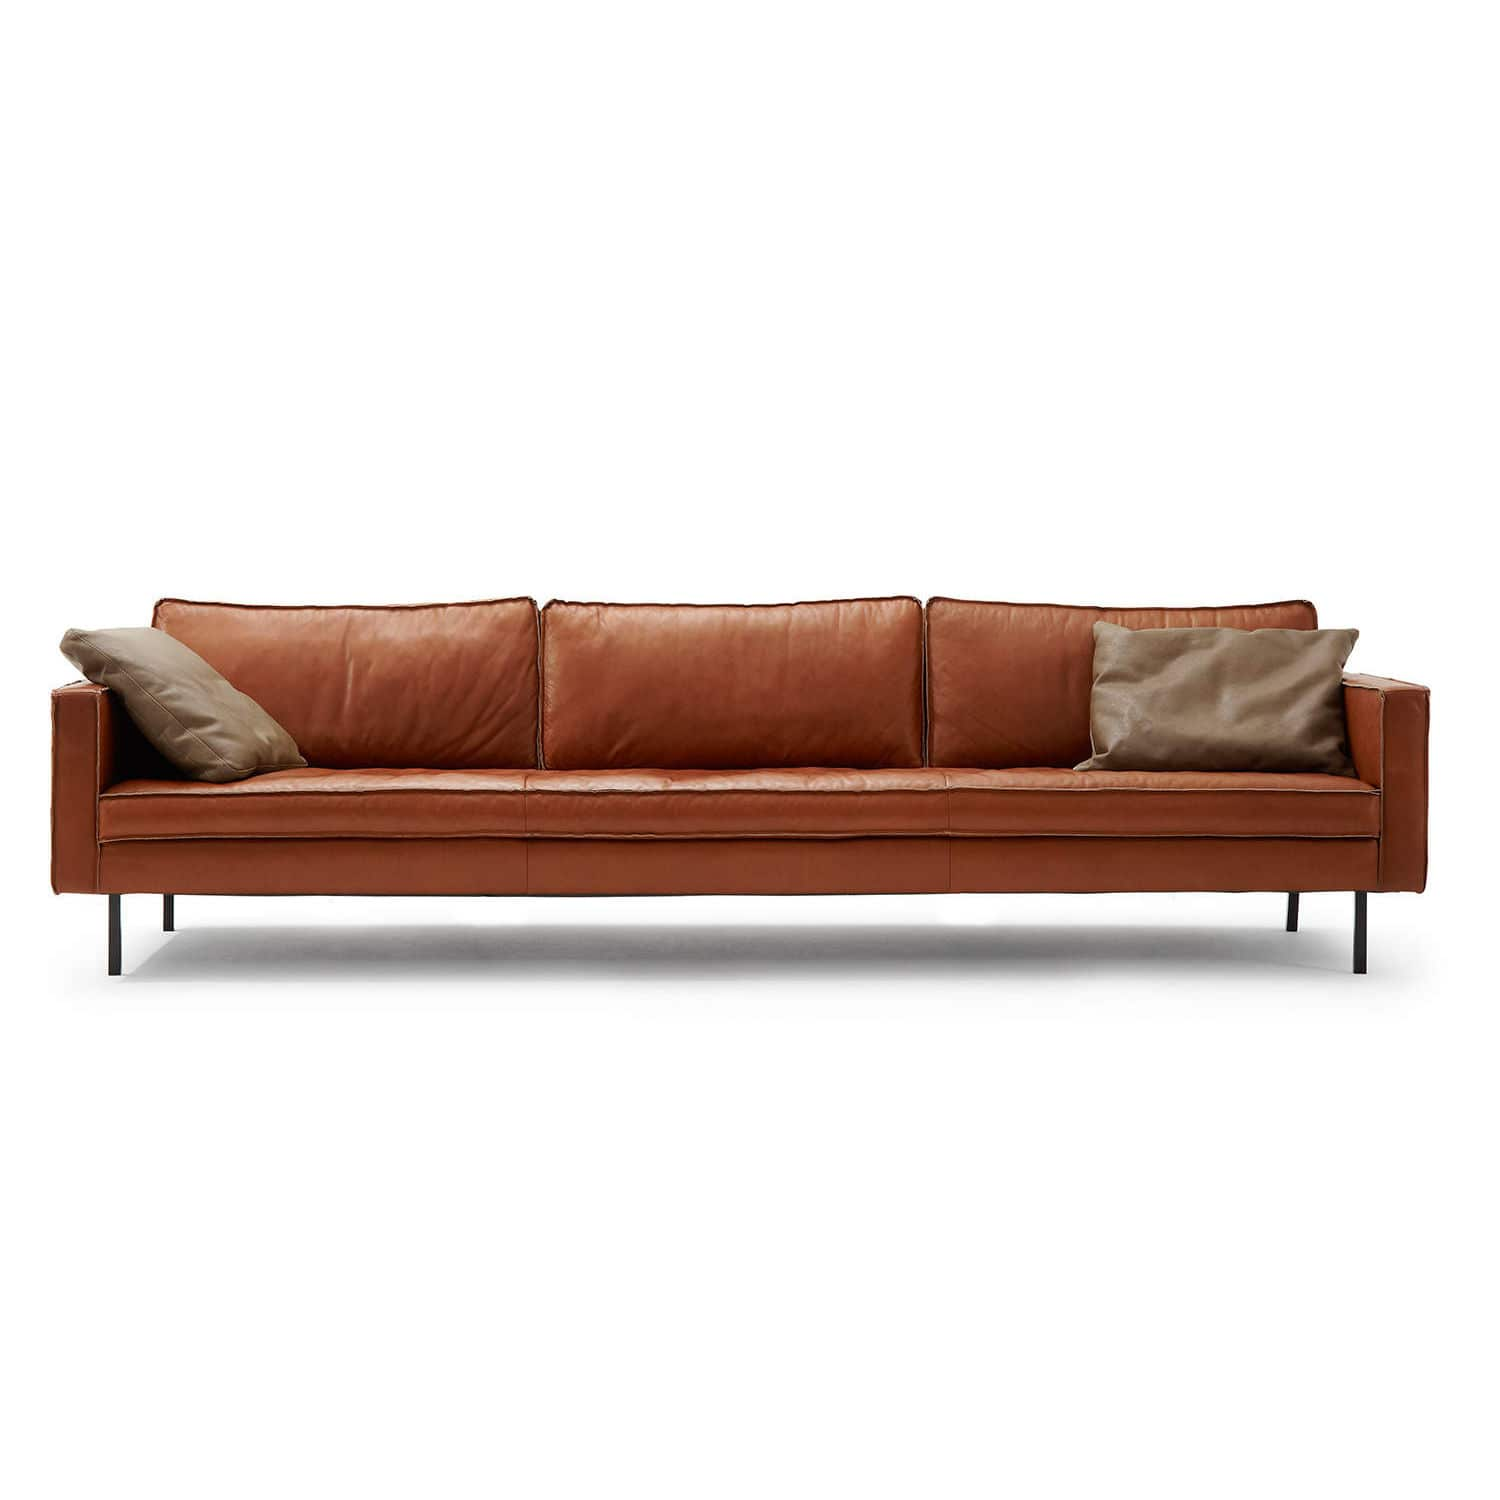 Modular sofa contemporary leather 3 seater BUSTER TM